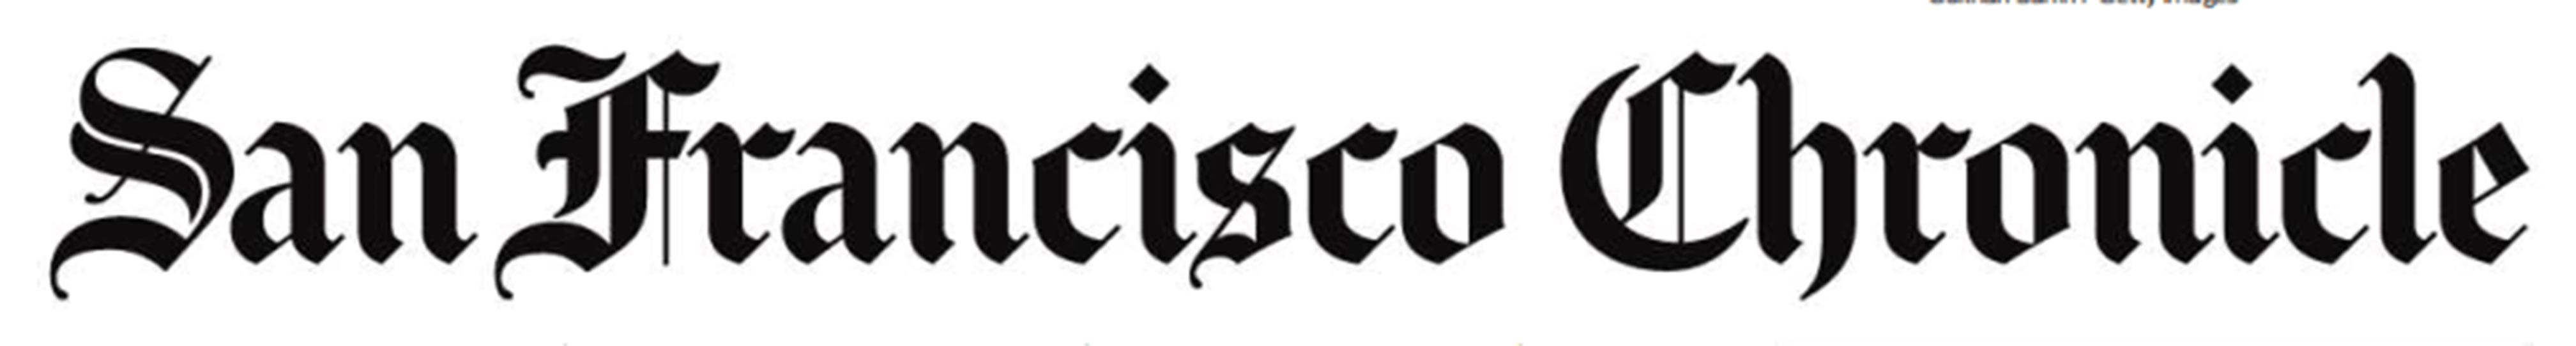 Image result for san francisco chronicle masthead